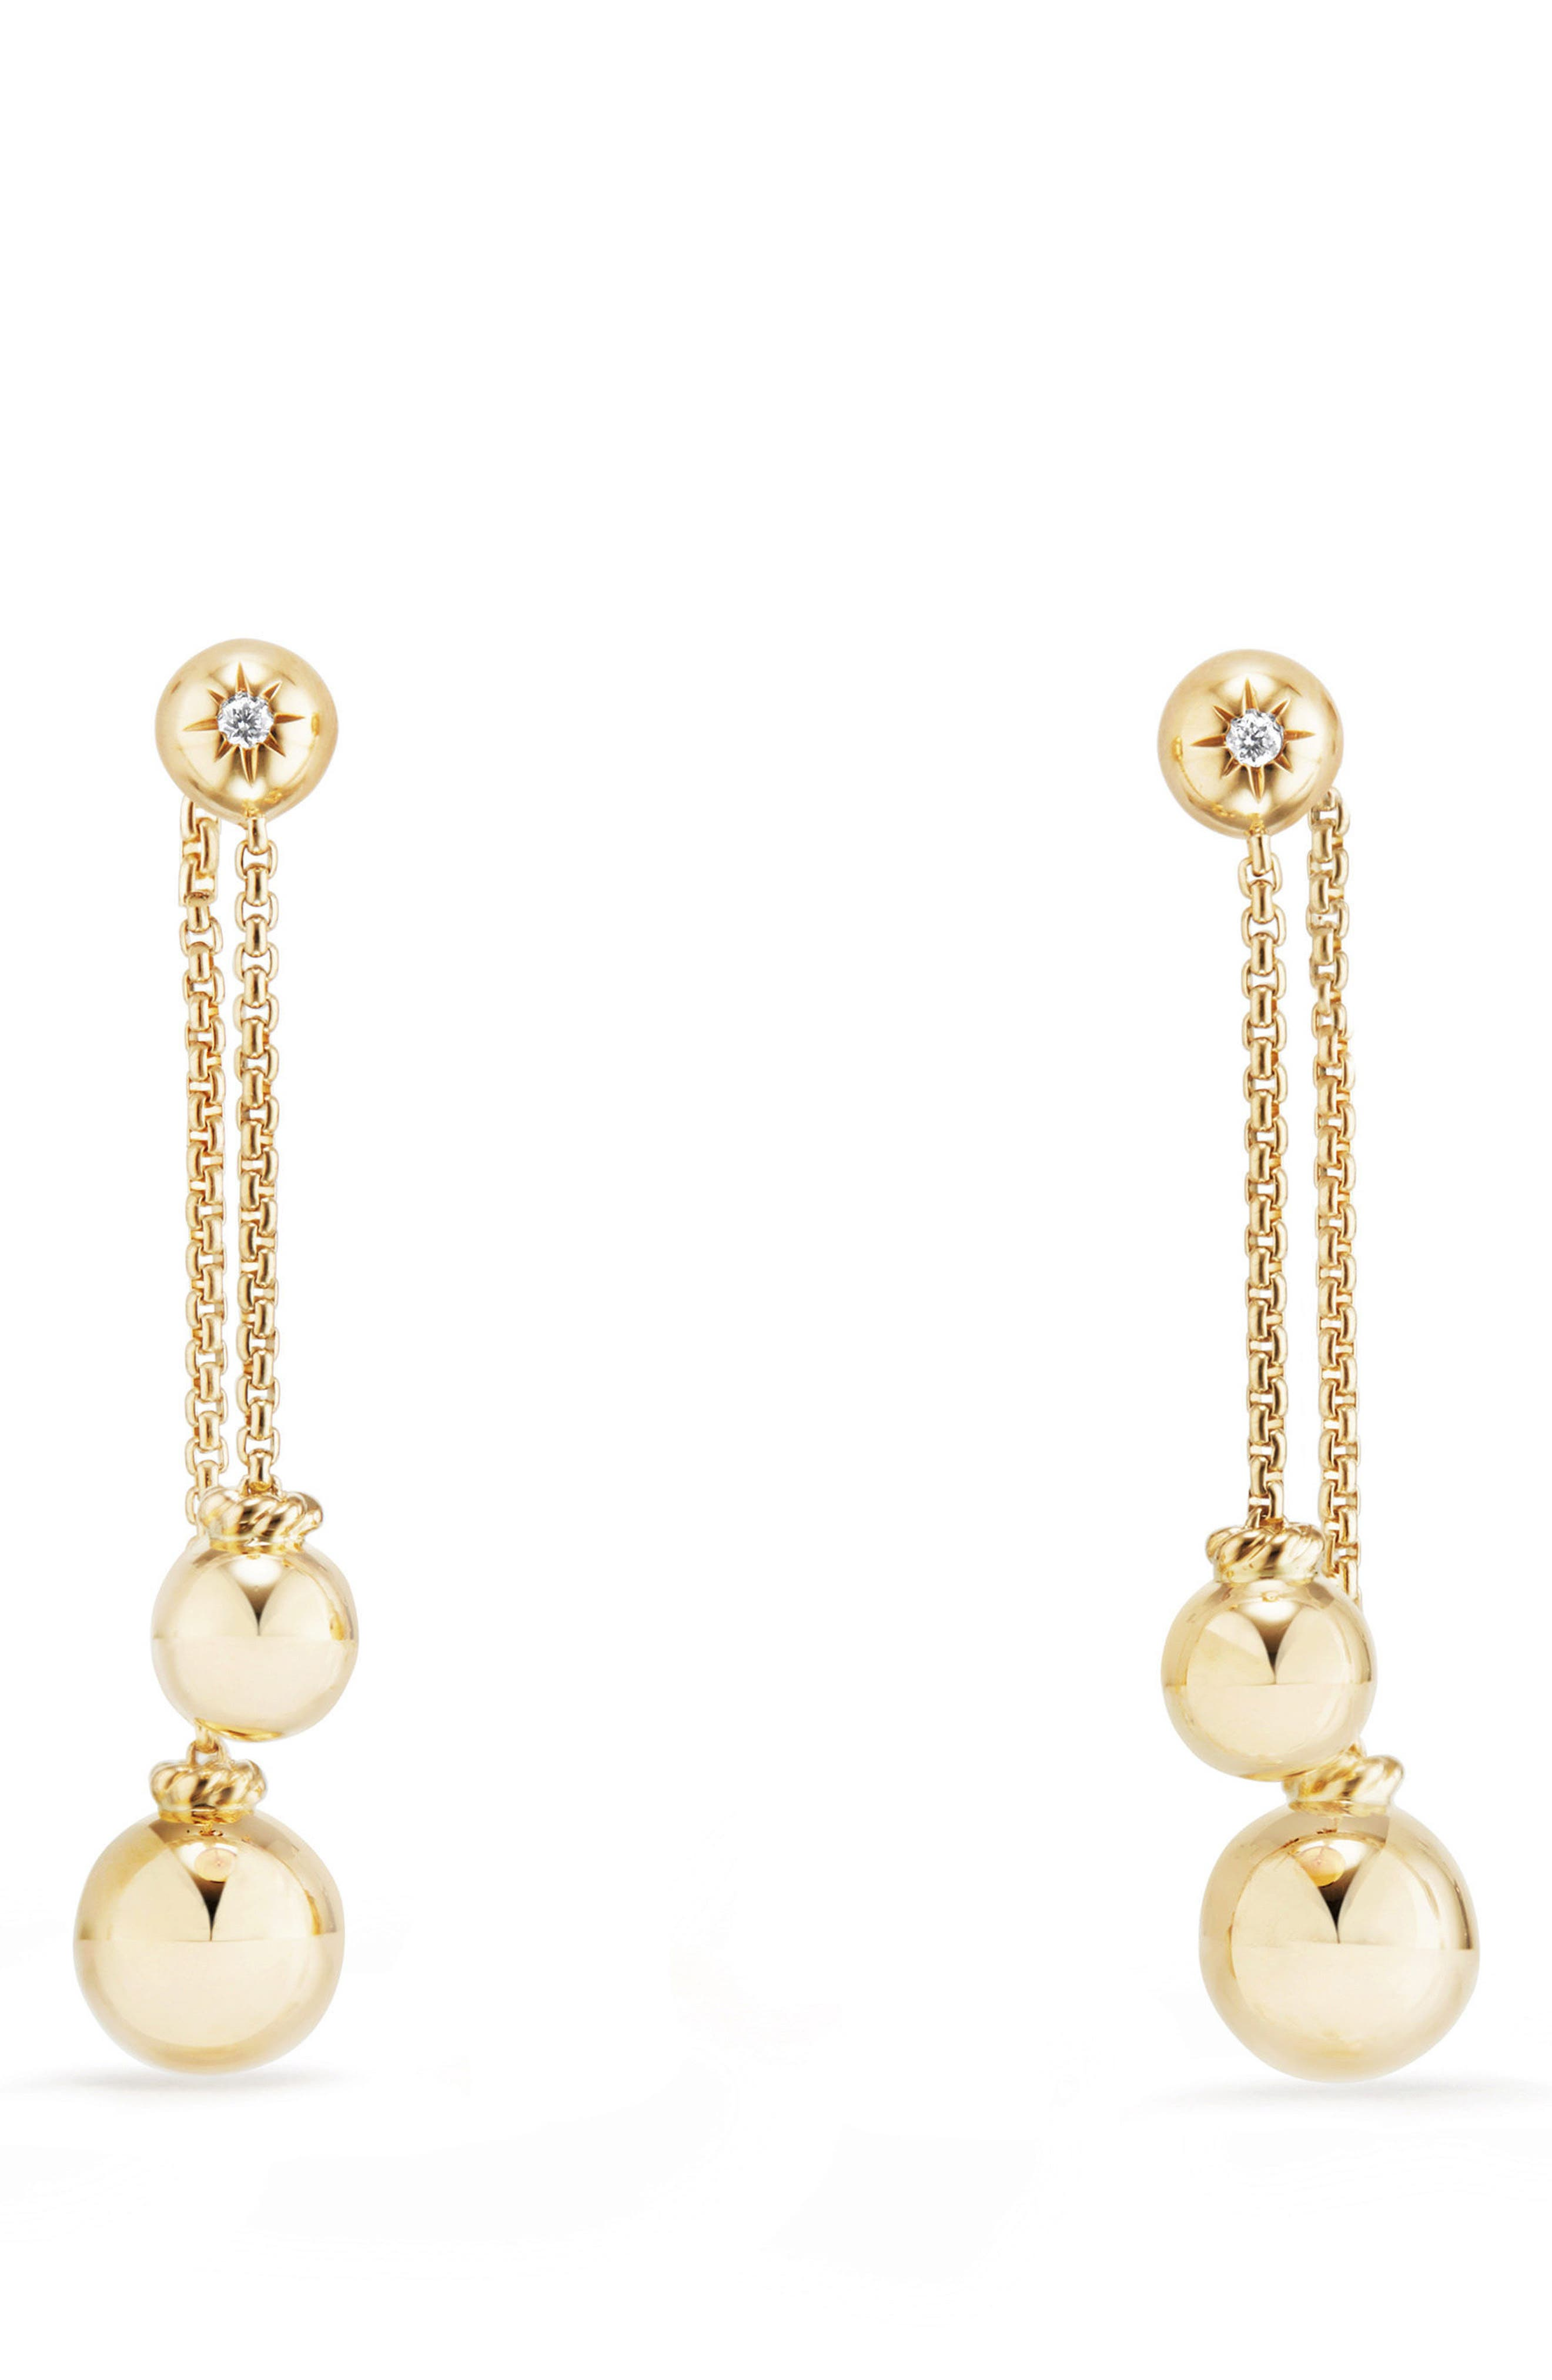 Solari Chain Drop Earrings with Diamonds in 18K Gold,                             Main thumbnail 1, color,                             710